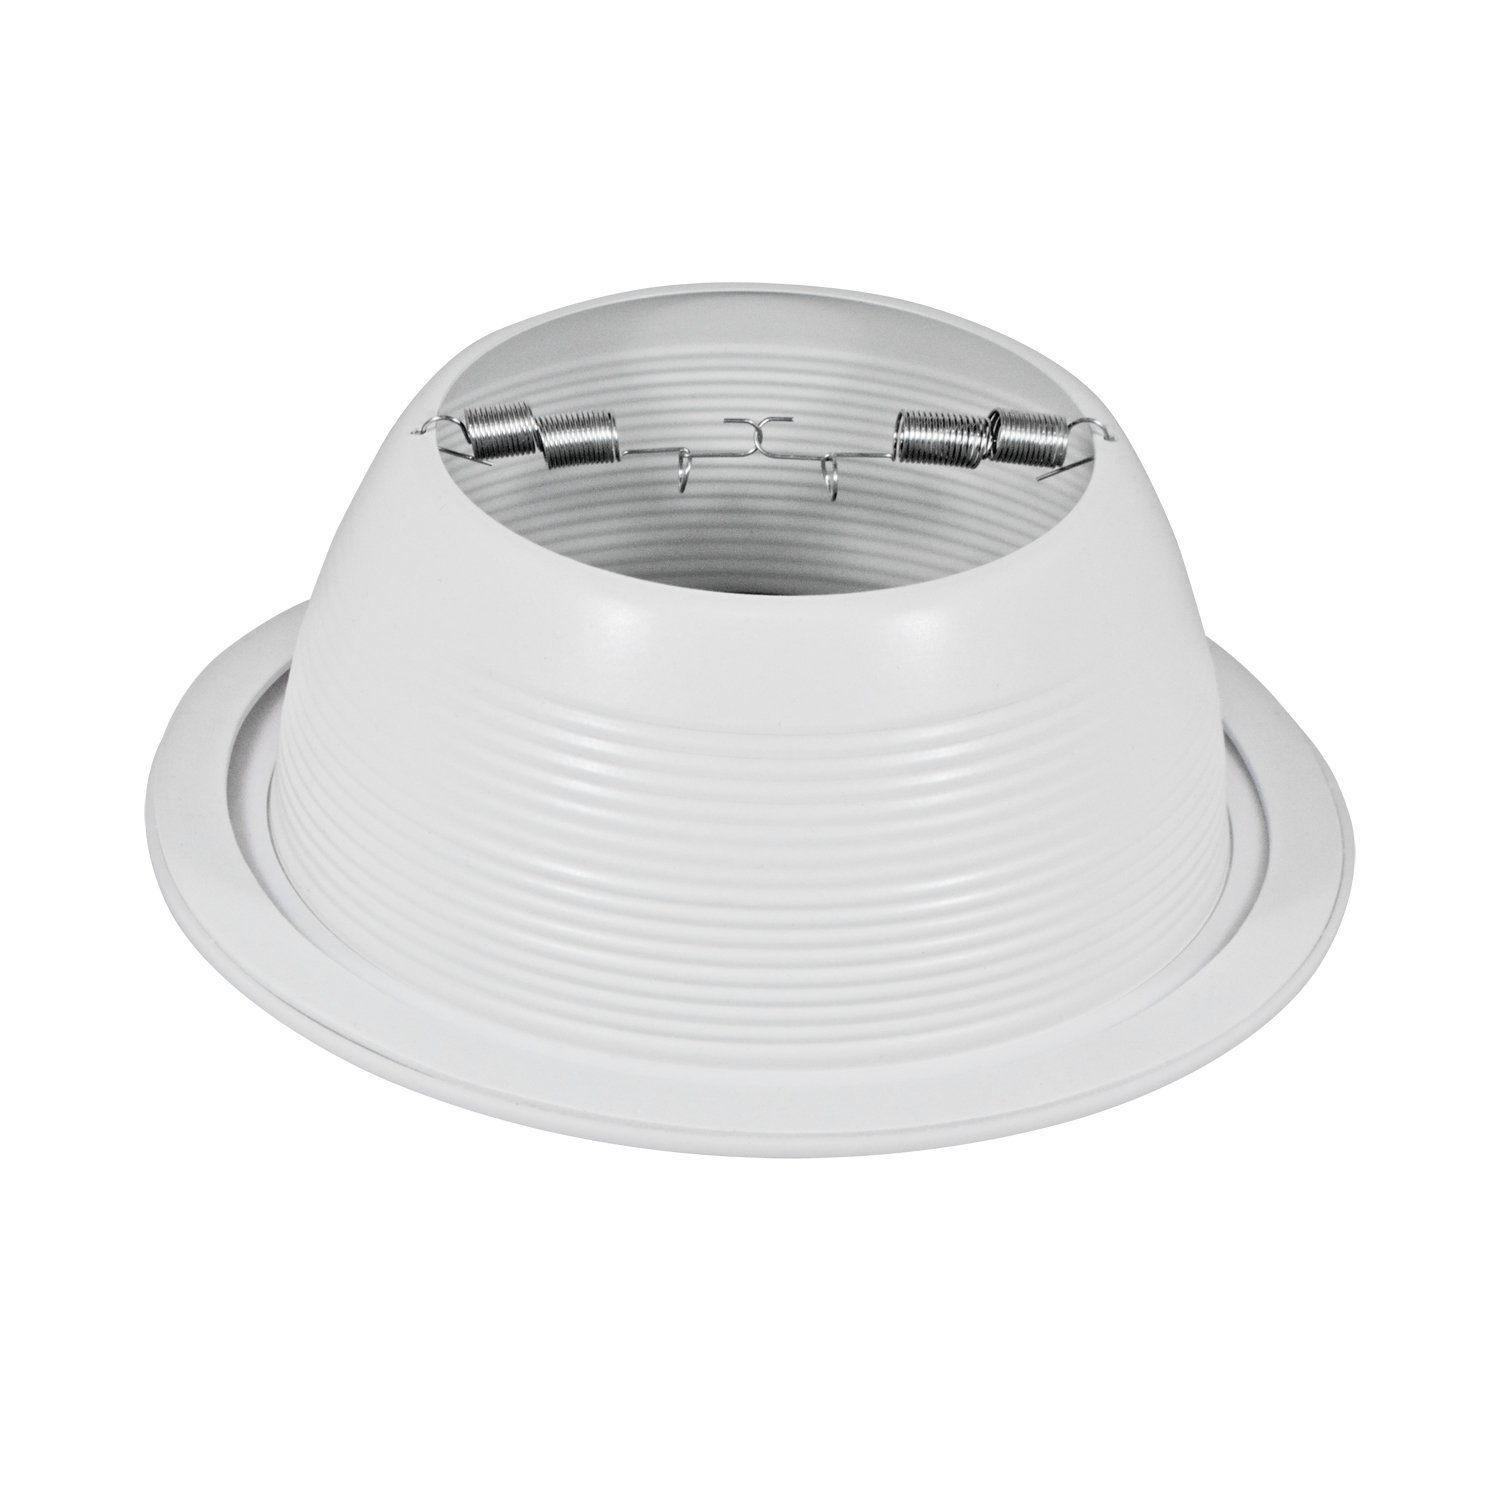 Pack of 24-6'' White Baffle Trim with White Ring for 6'' Recessed Can Lighting - Replaces BR30/PAR30/R30